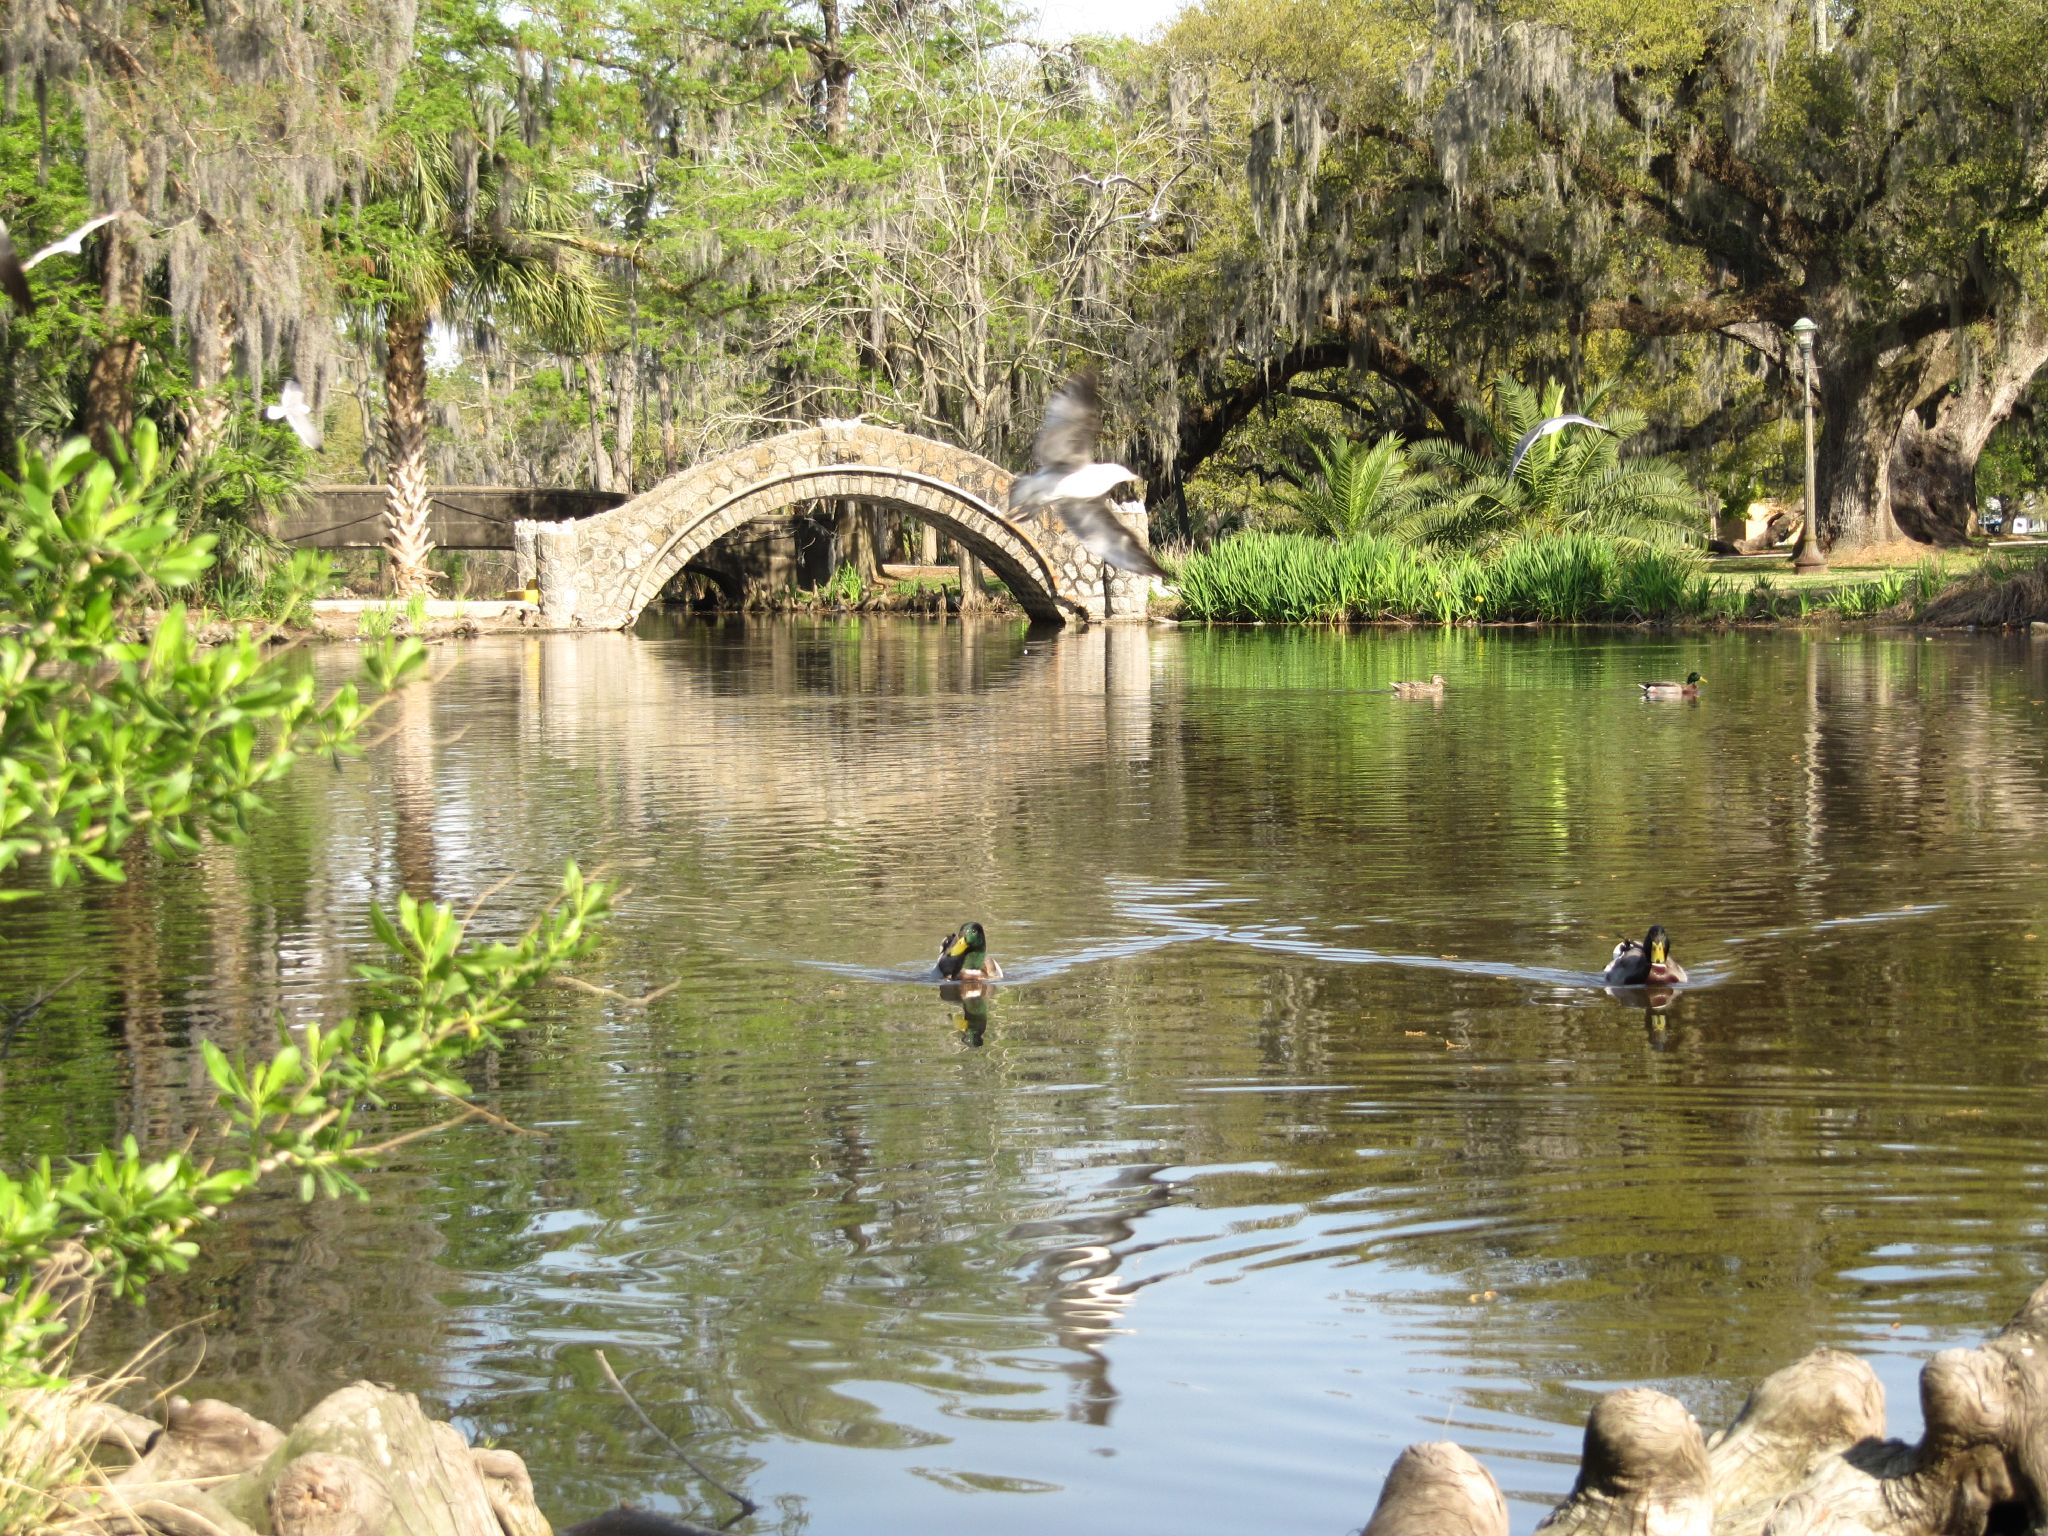 The picturesque arched Langles Bridge crosses one of City Park's numerous lagoons.